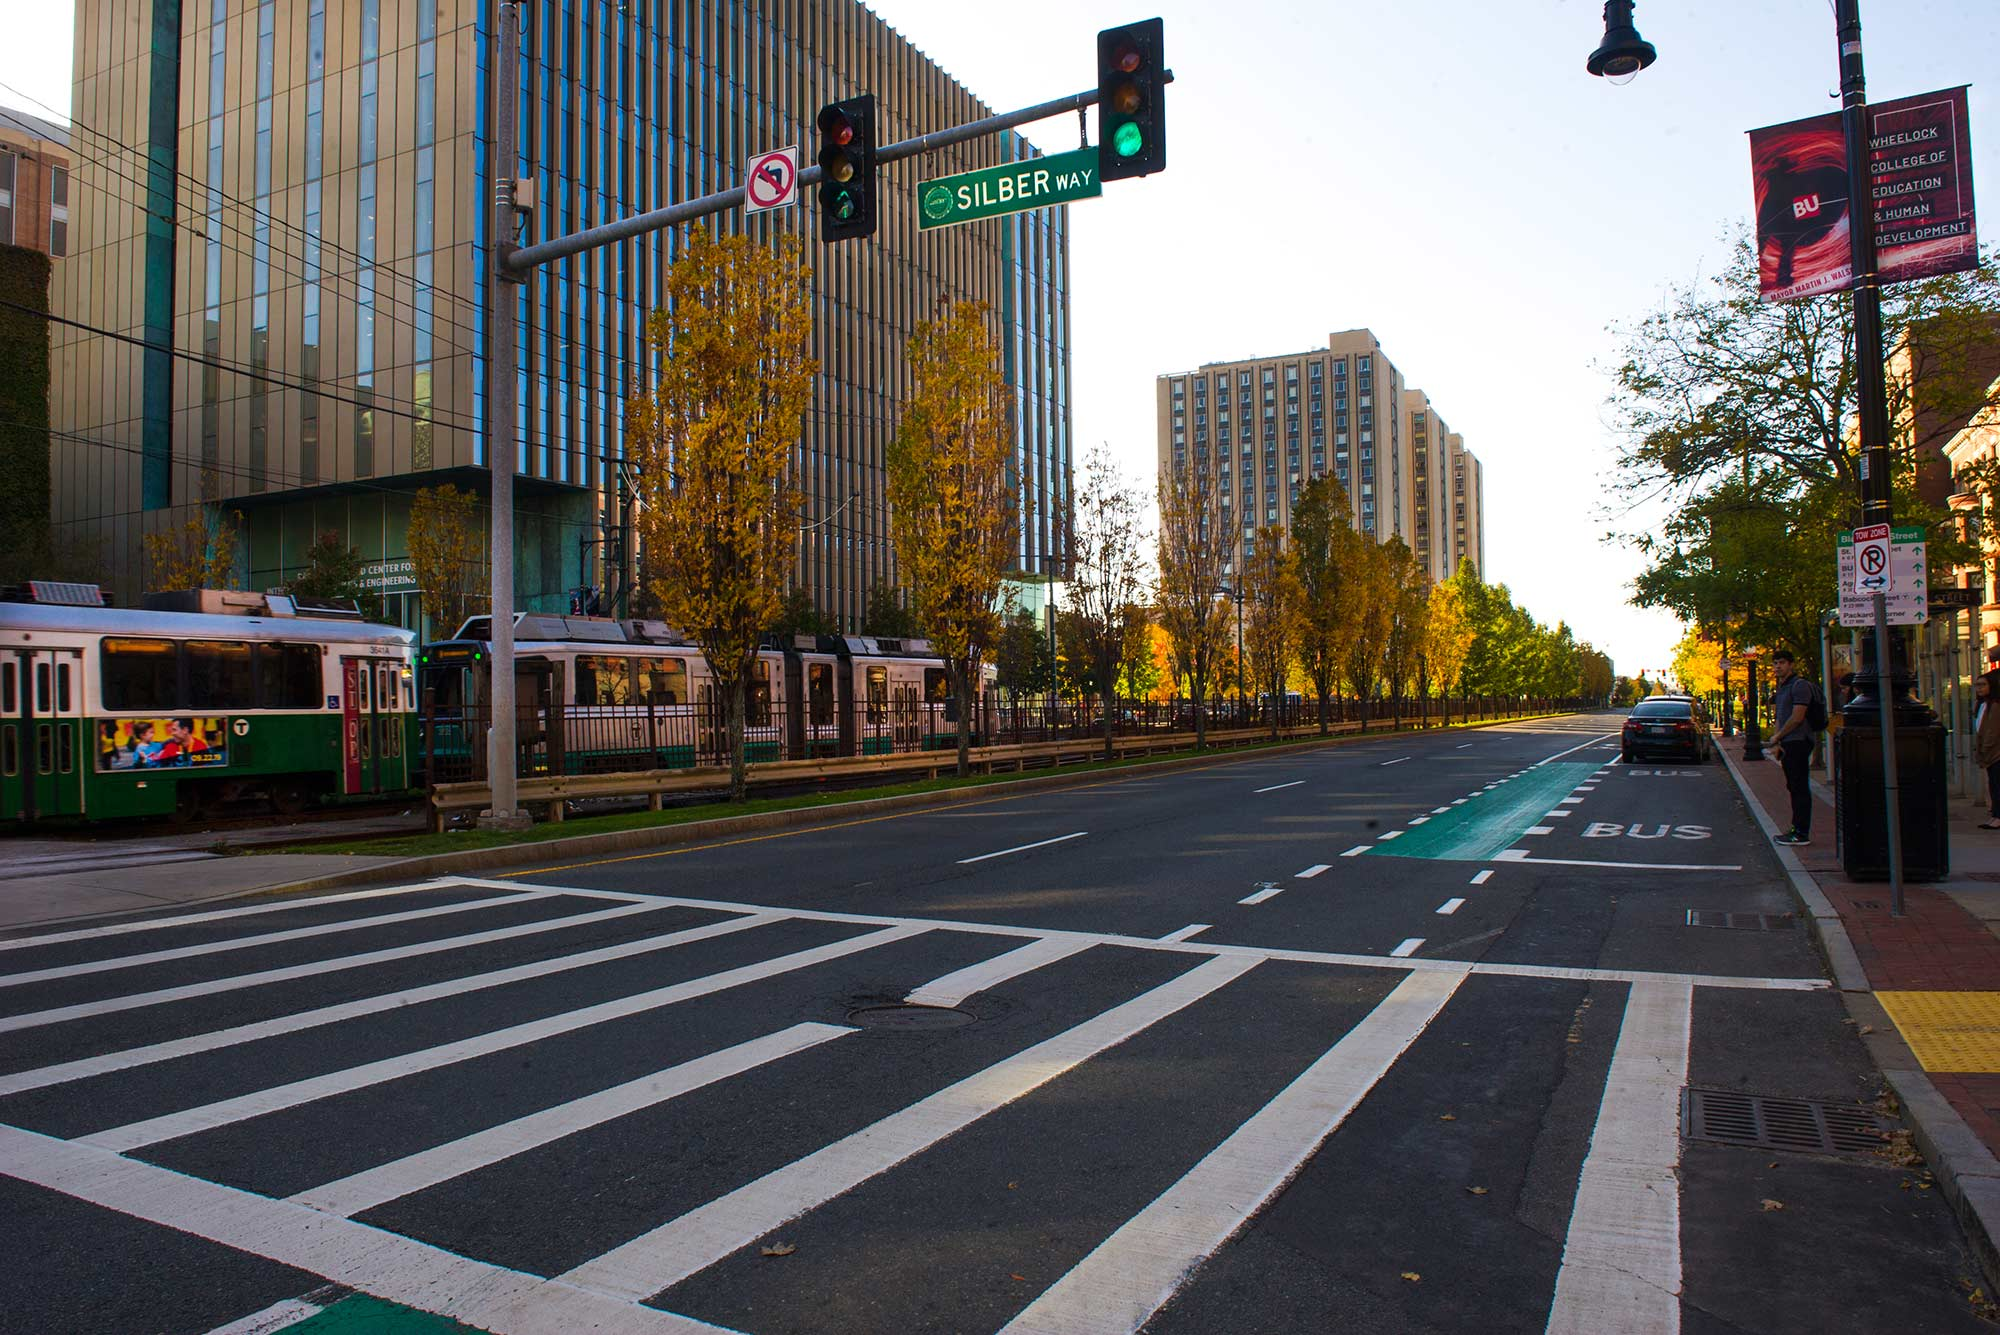 Photo of Commonwealth Avenue in East Campus by Silber Way. The T passes by and the trees look golden. Students wait at the BU BUS stop. Warren towers and Wheelock College banners are seen in the background.